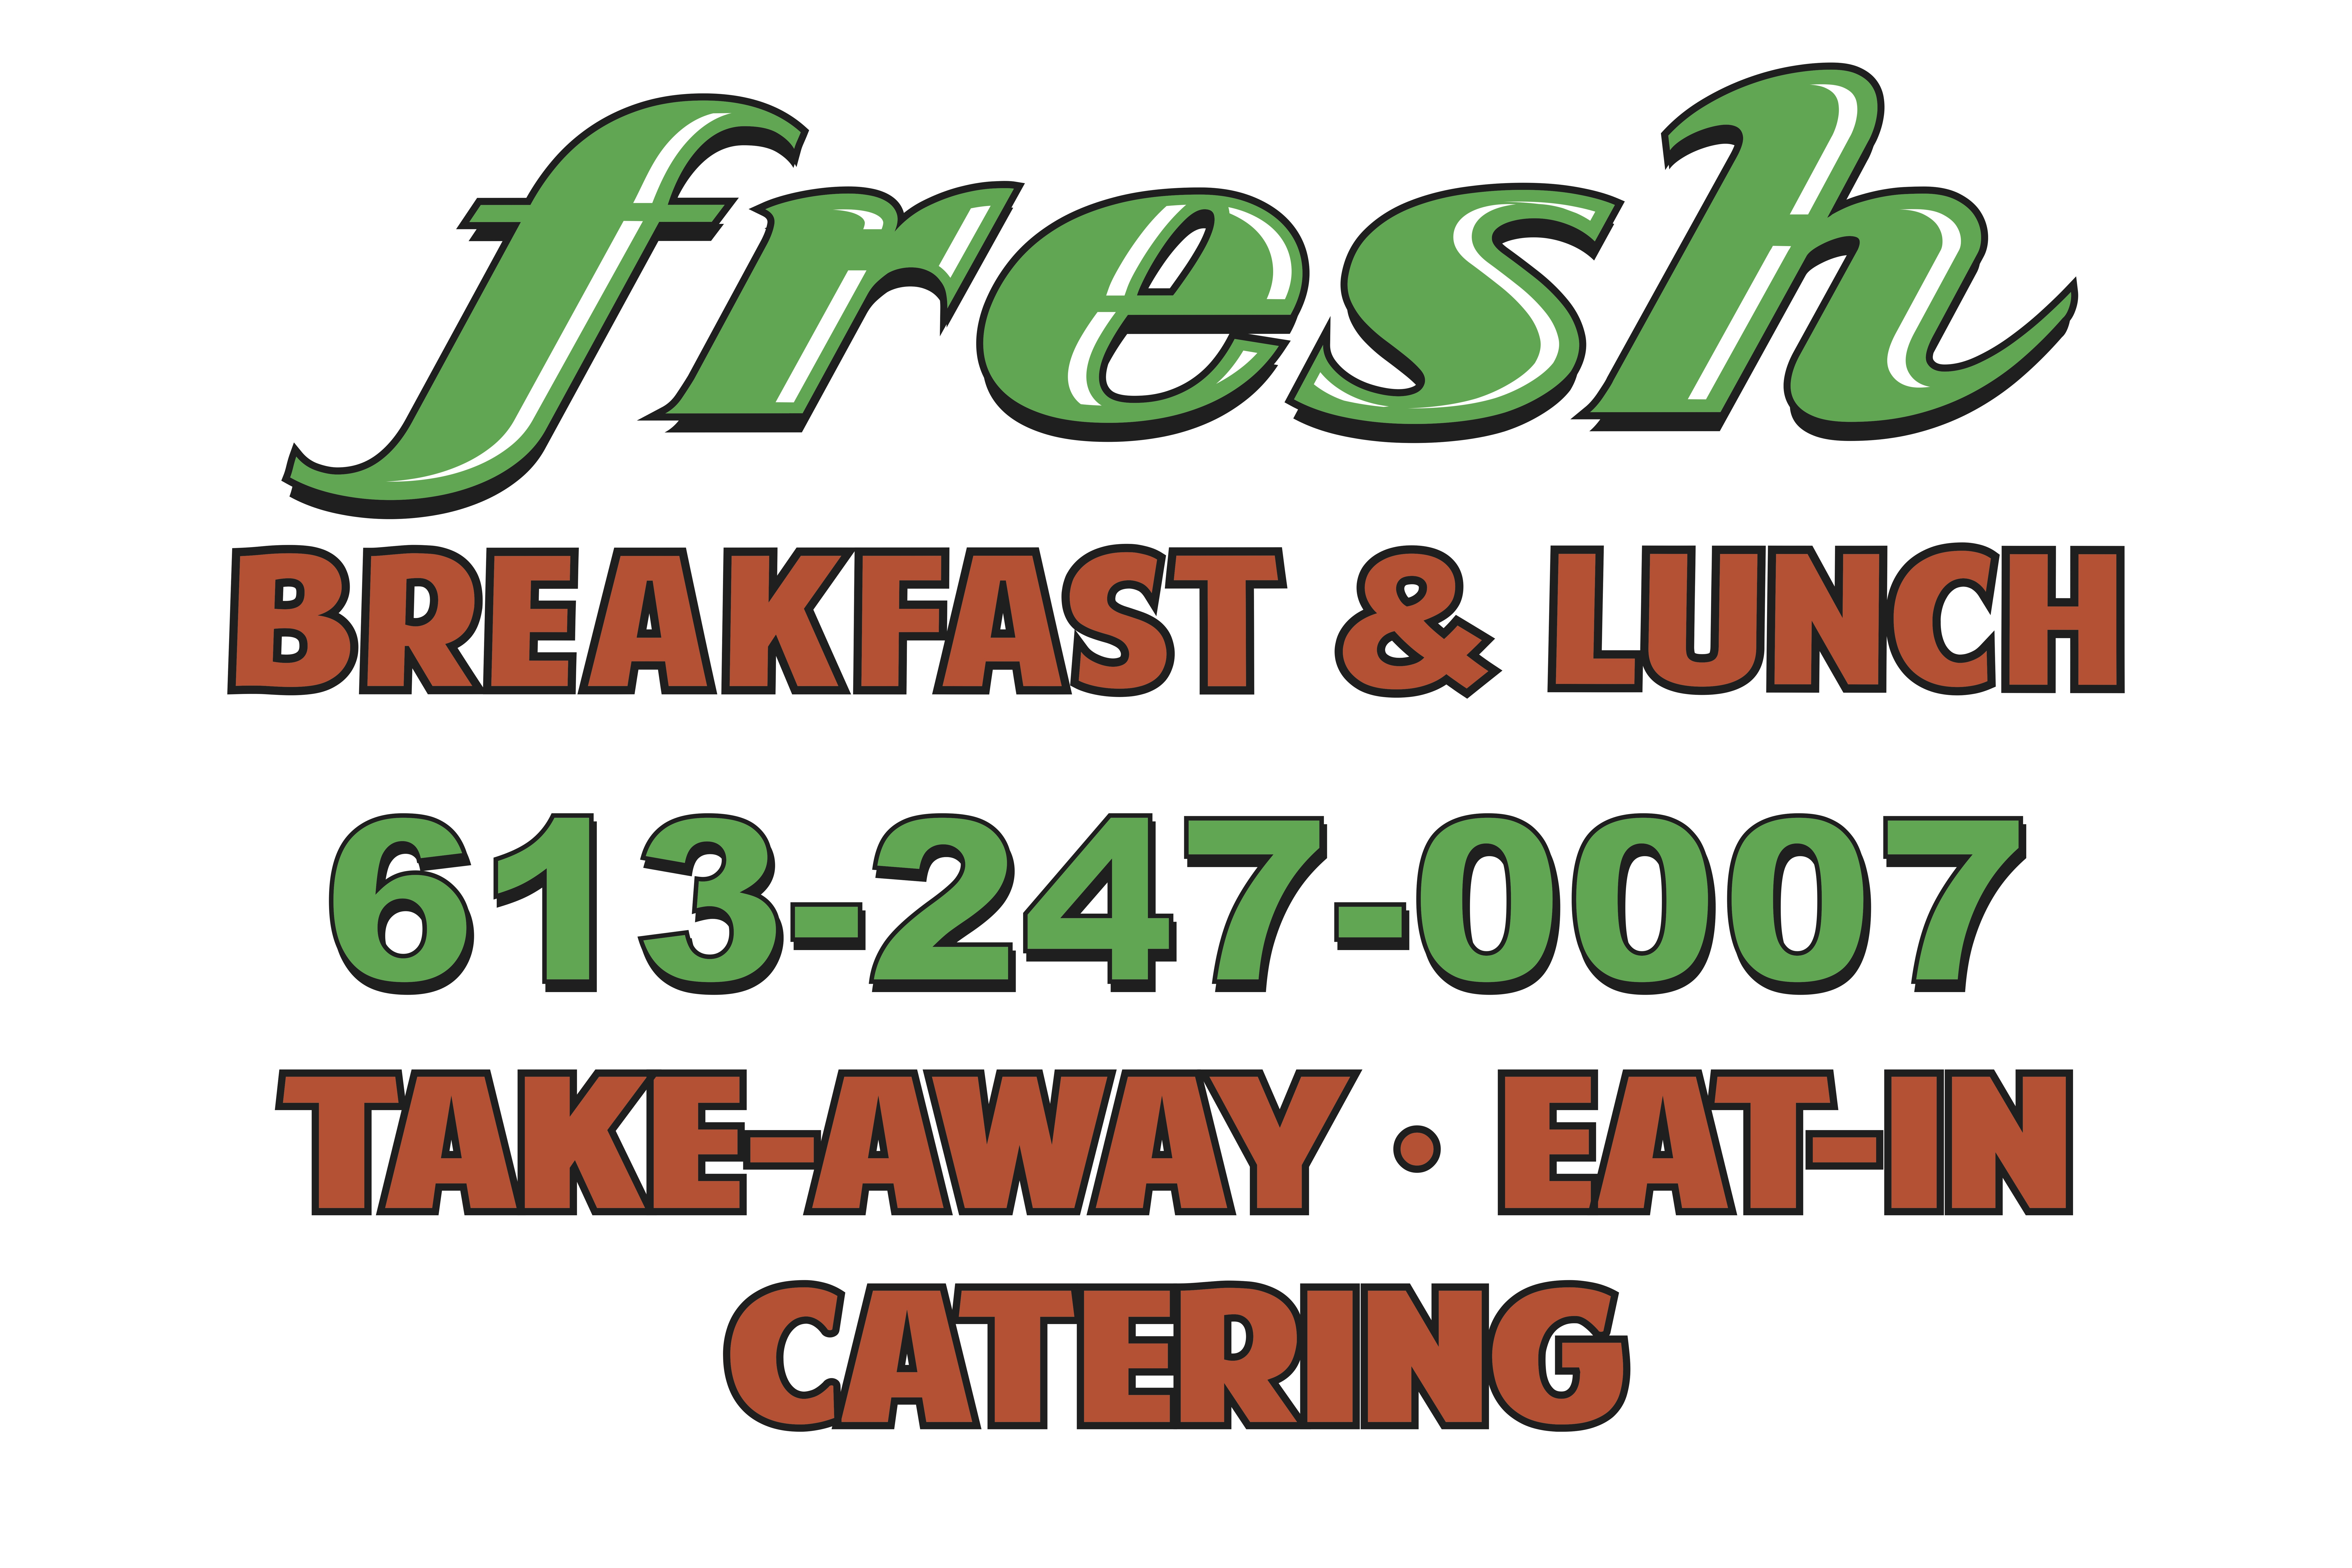 FRESH BREAKFAST & LUNCH